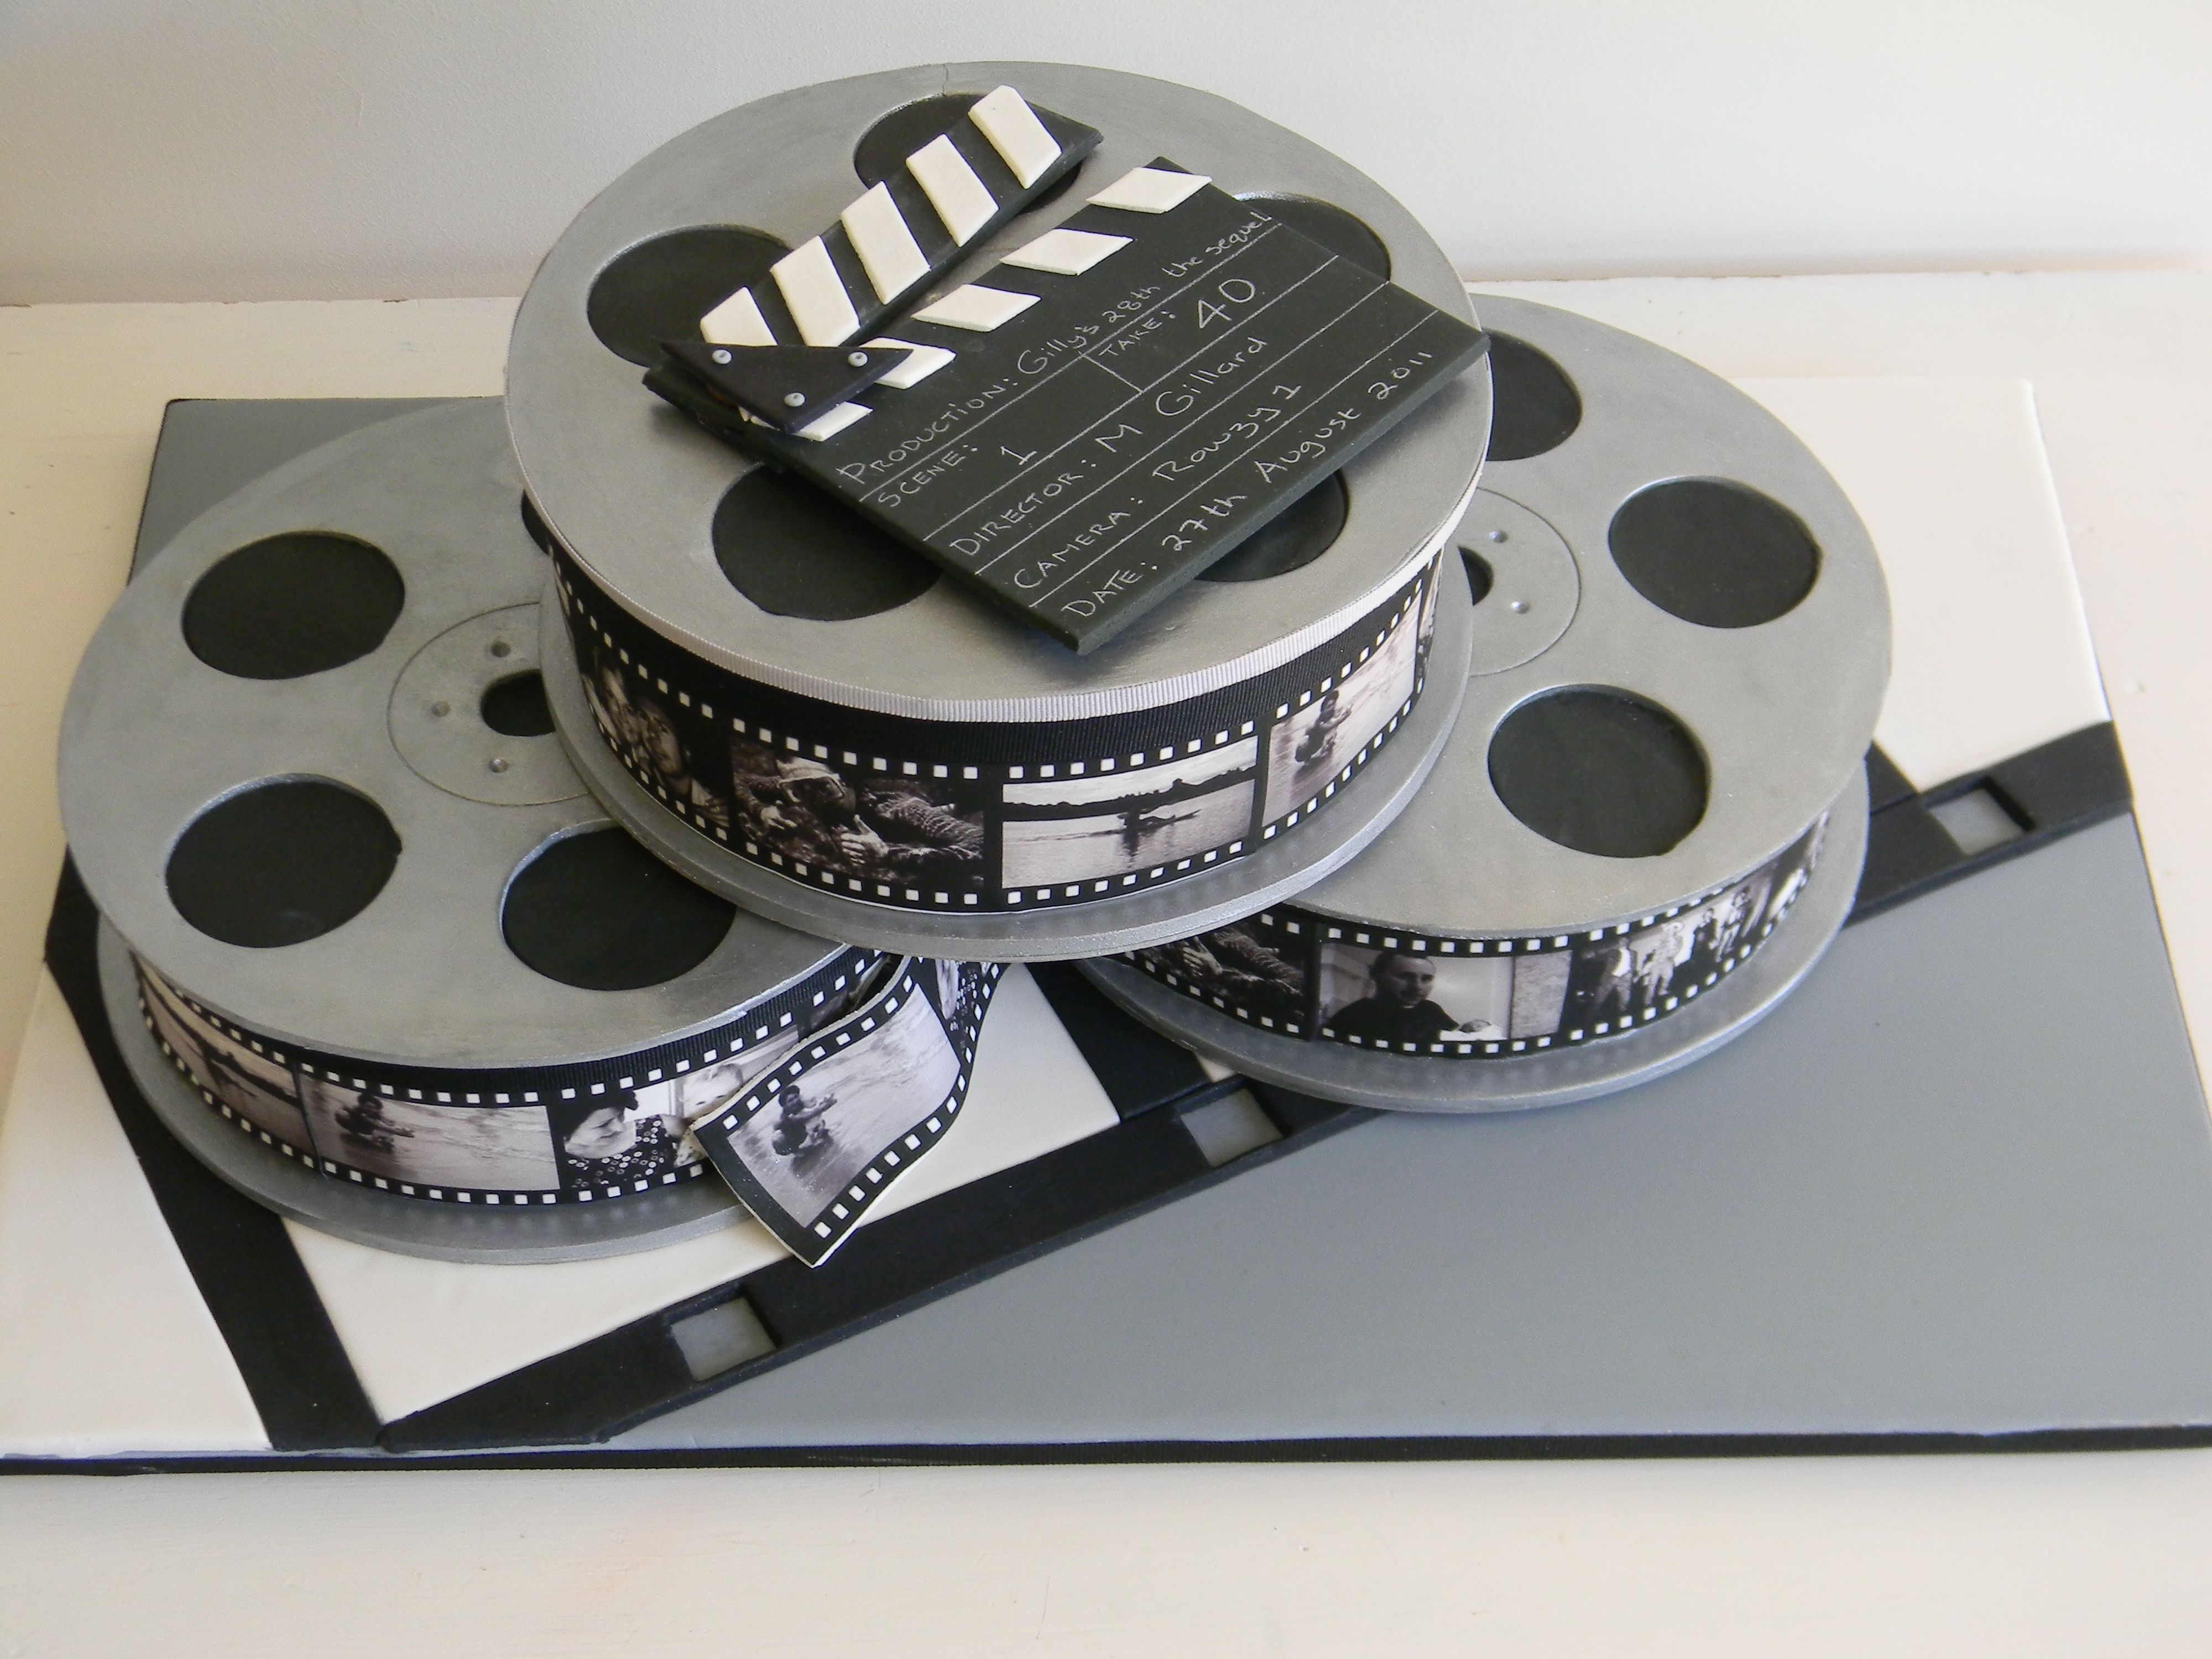 Movie Reel Cake For A Hollywood Theme Birthday Party Saw This - Movie themed birthday cake